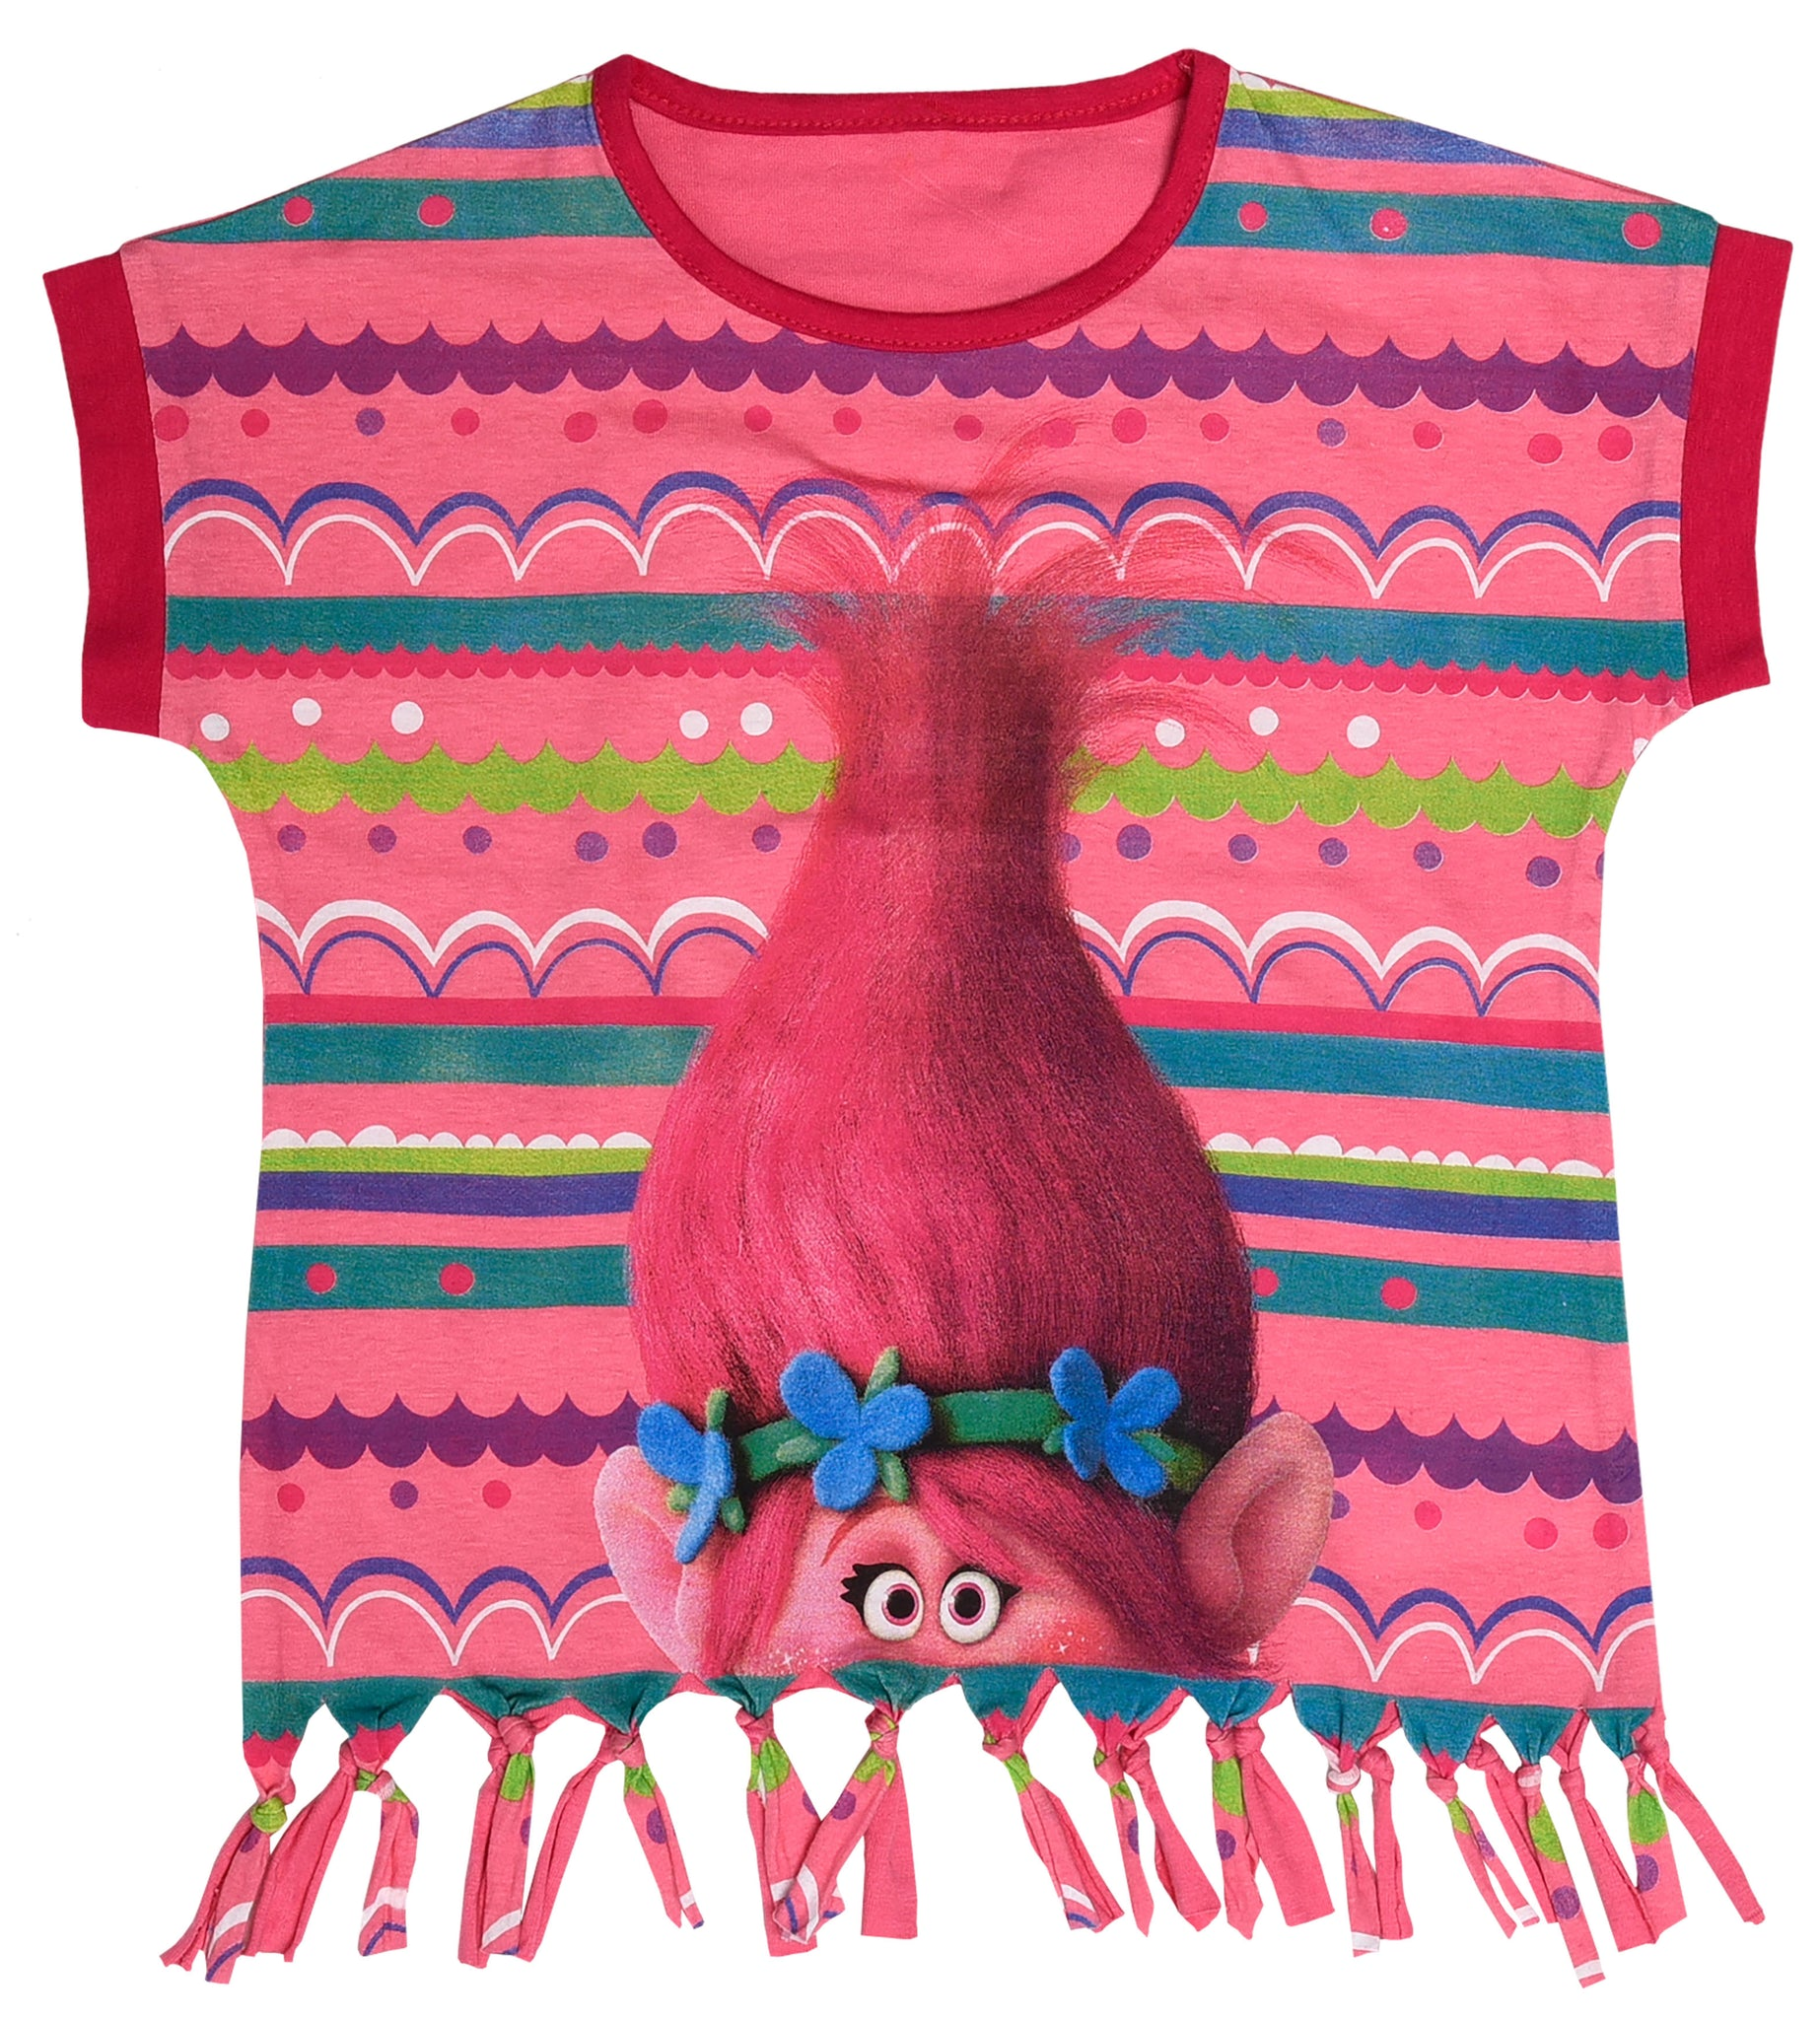 Trolls top with fringes